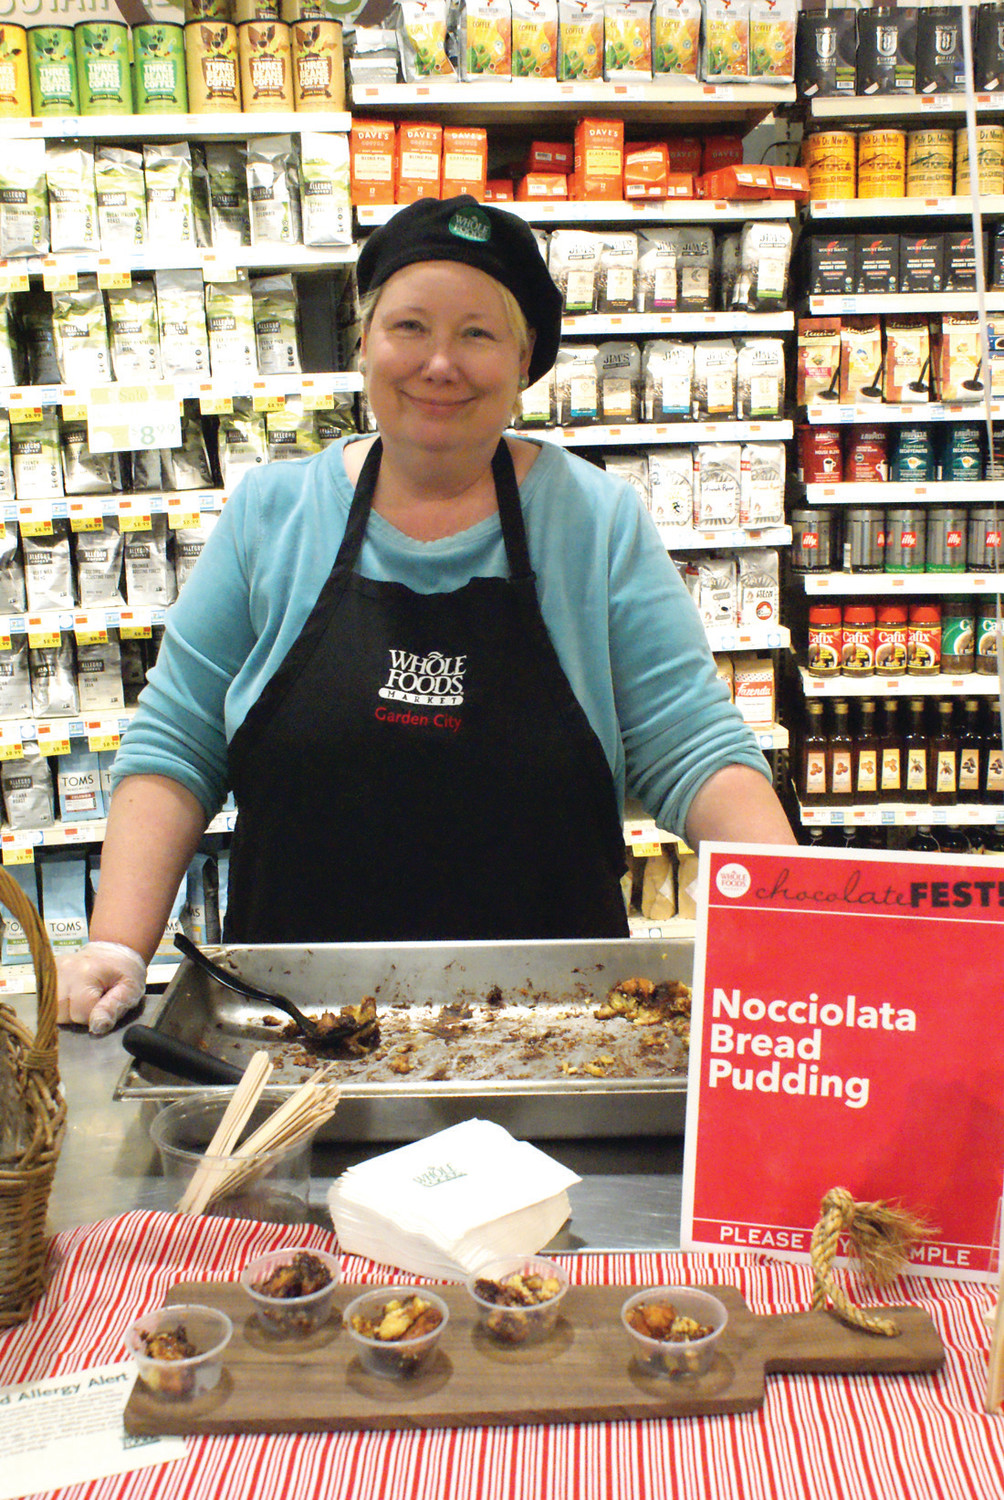 SERVICE WITH A SMILE: Whole Foods Cranstons Chocolate Fest Coordinator, Jennifer Goff, who is also a demo specialist for Whole Foods, serving free samples of store made chocolate hazelnut bread pudding.